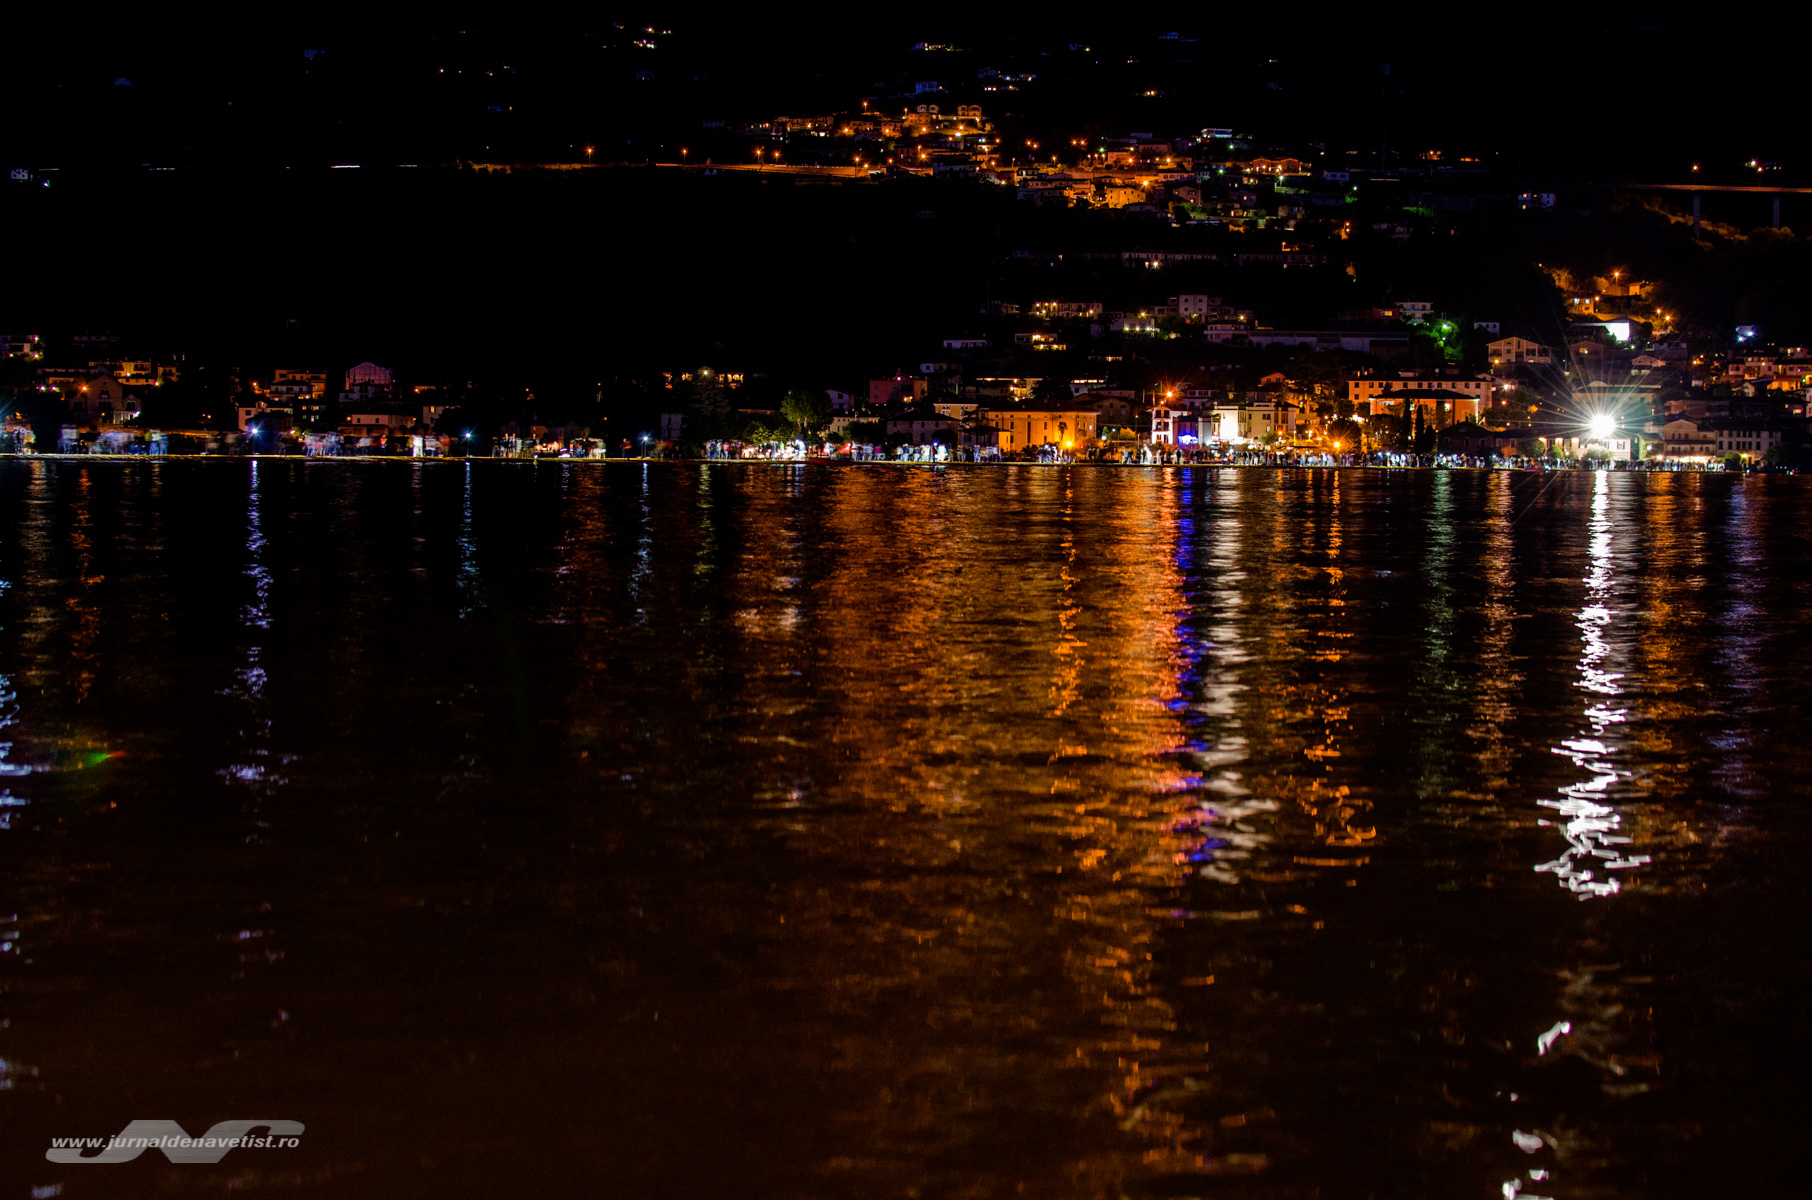 The Floating Piers 8160